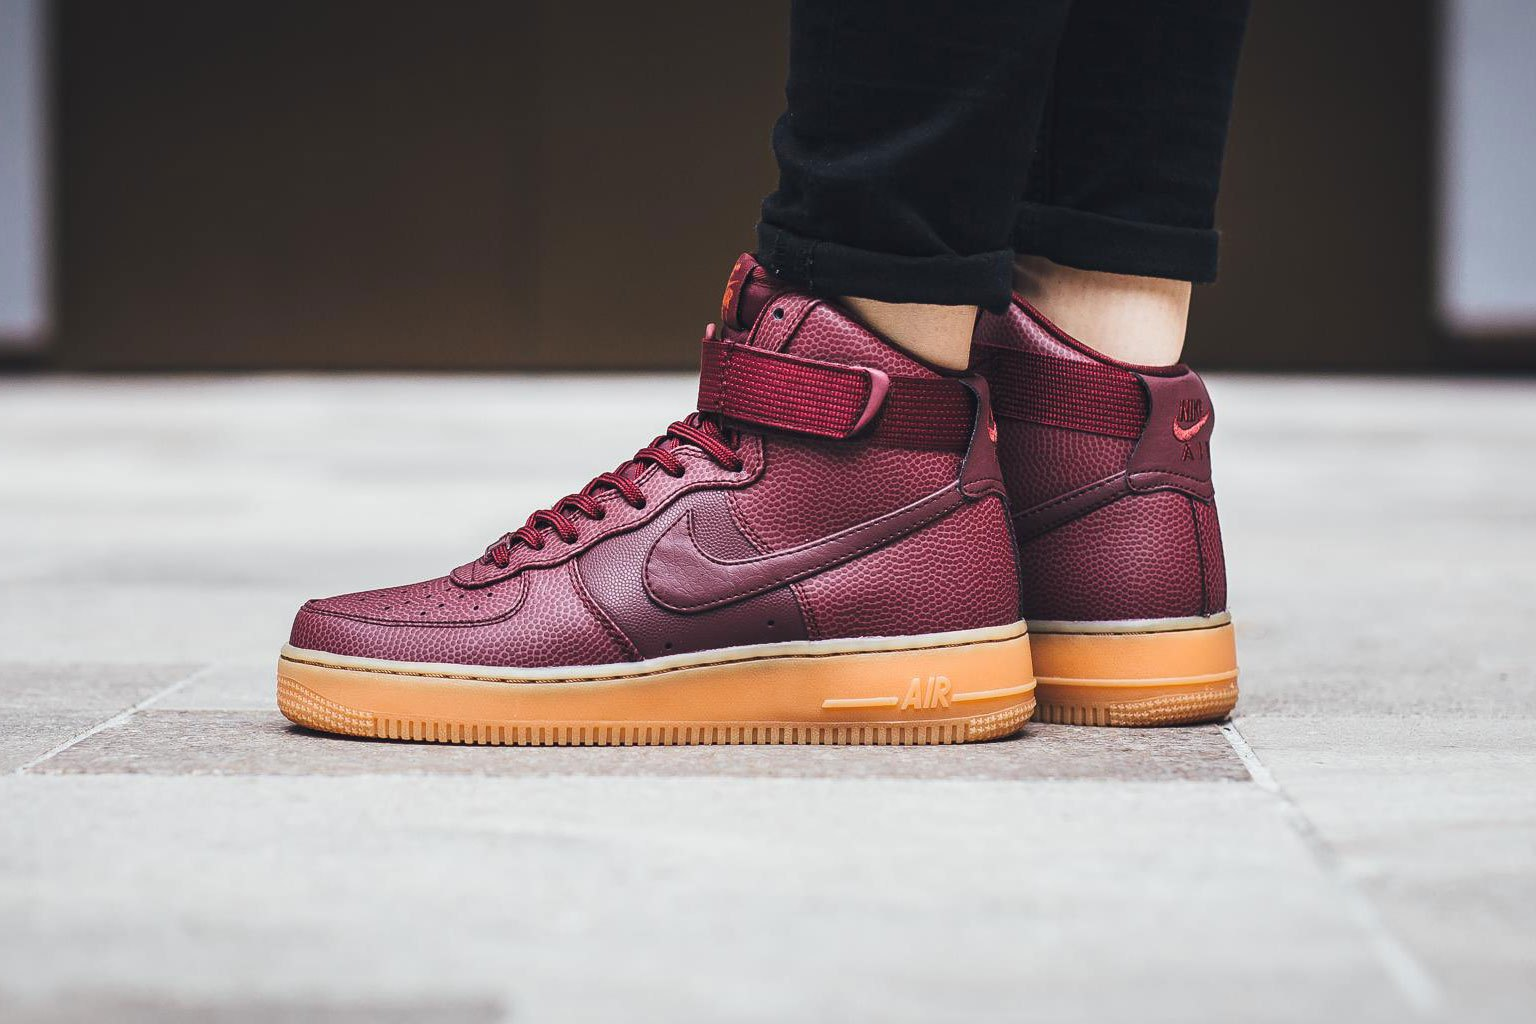 nike-air-force-1-hi-se-night-maroon-1.jpg